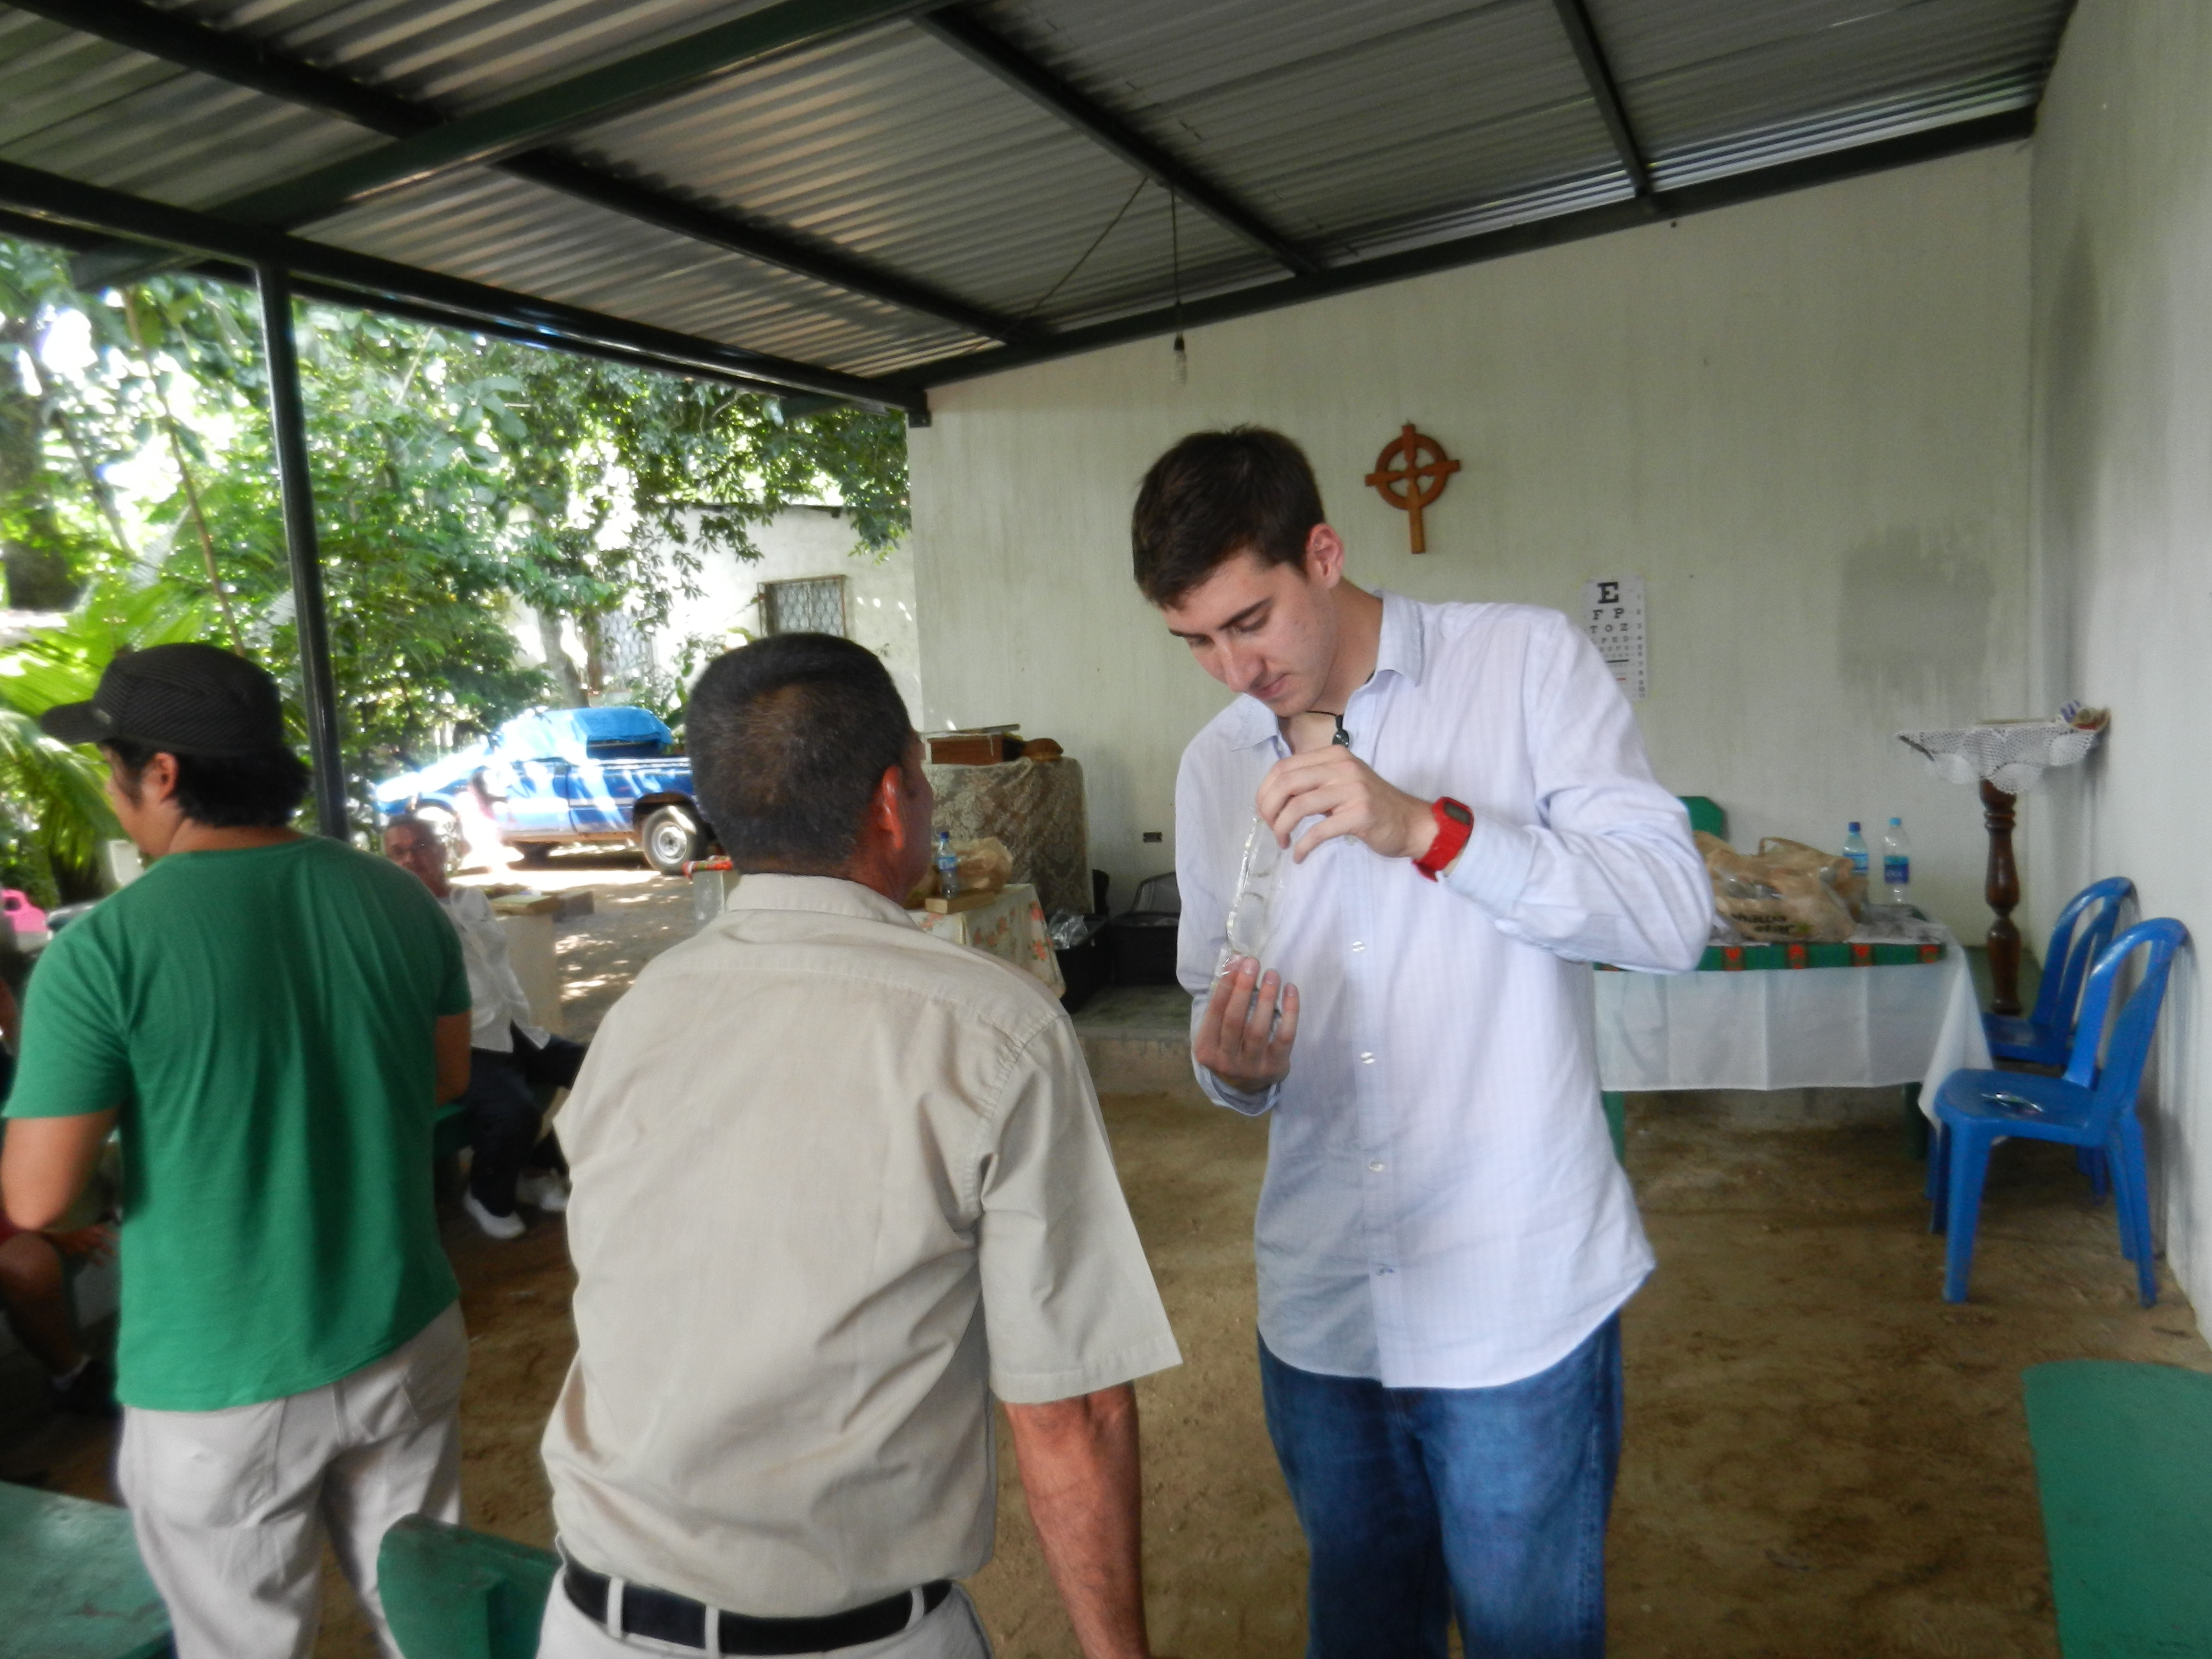 We performed over 80 eye exams with the aid of the volunteers at the free clinic in Santo Domingo Suchitepéquez.